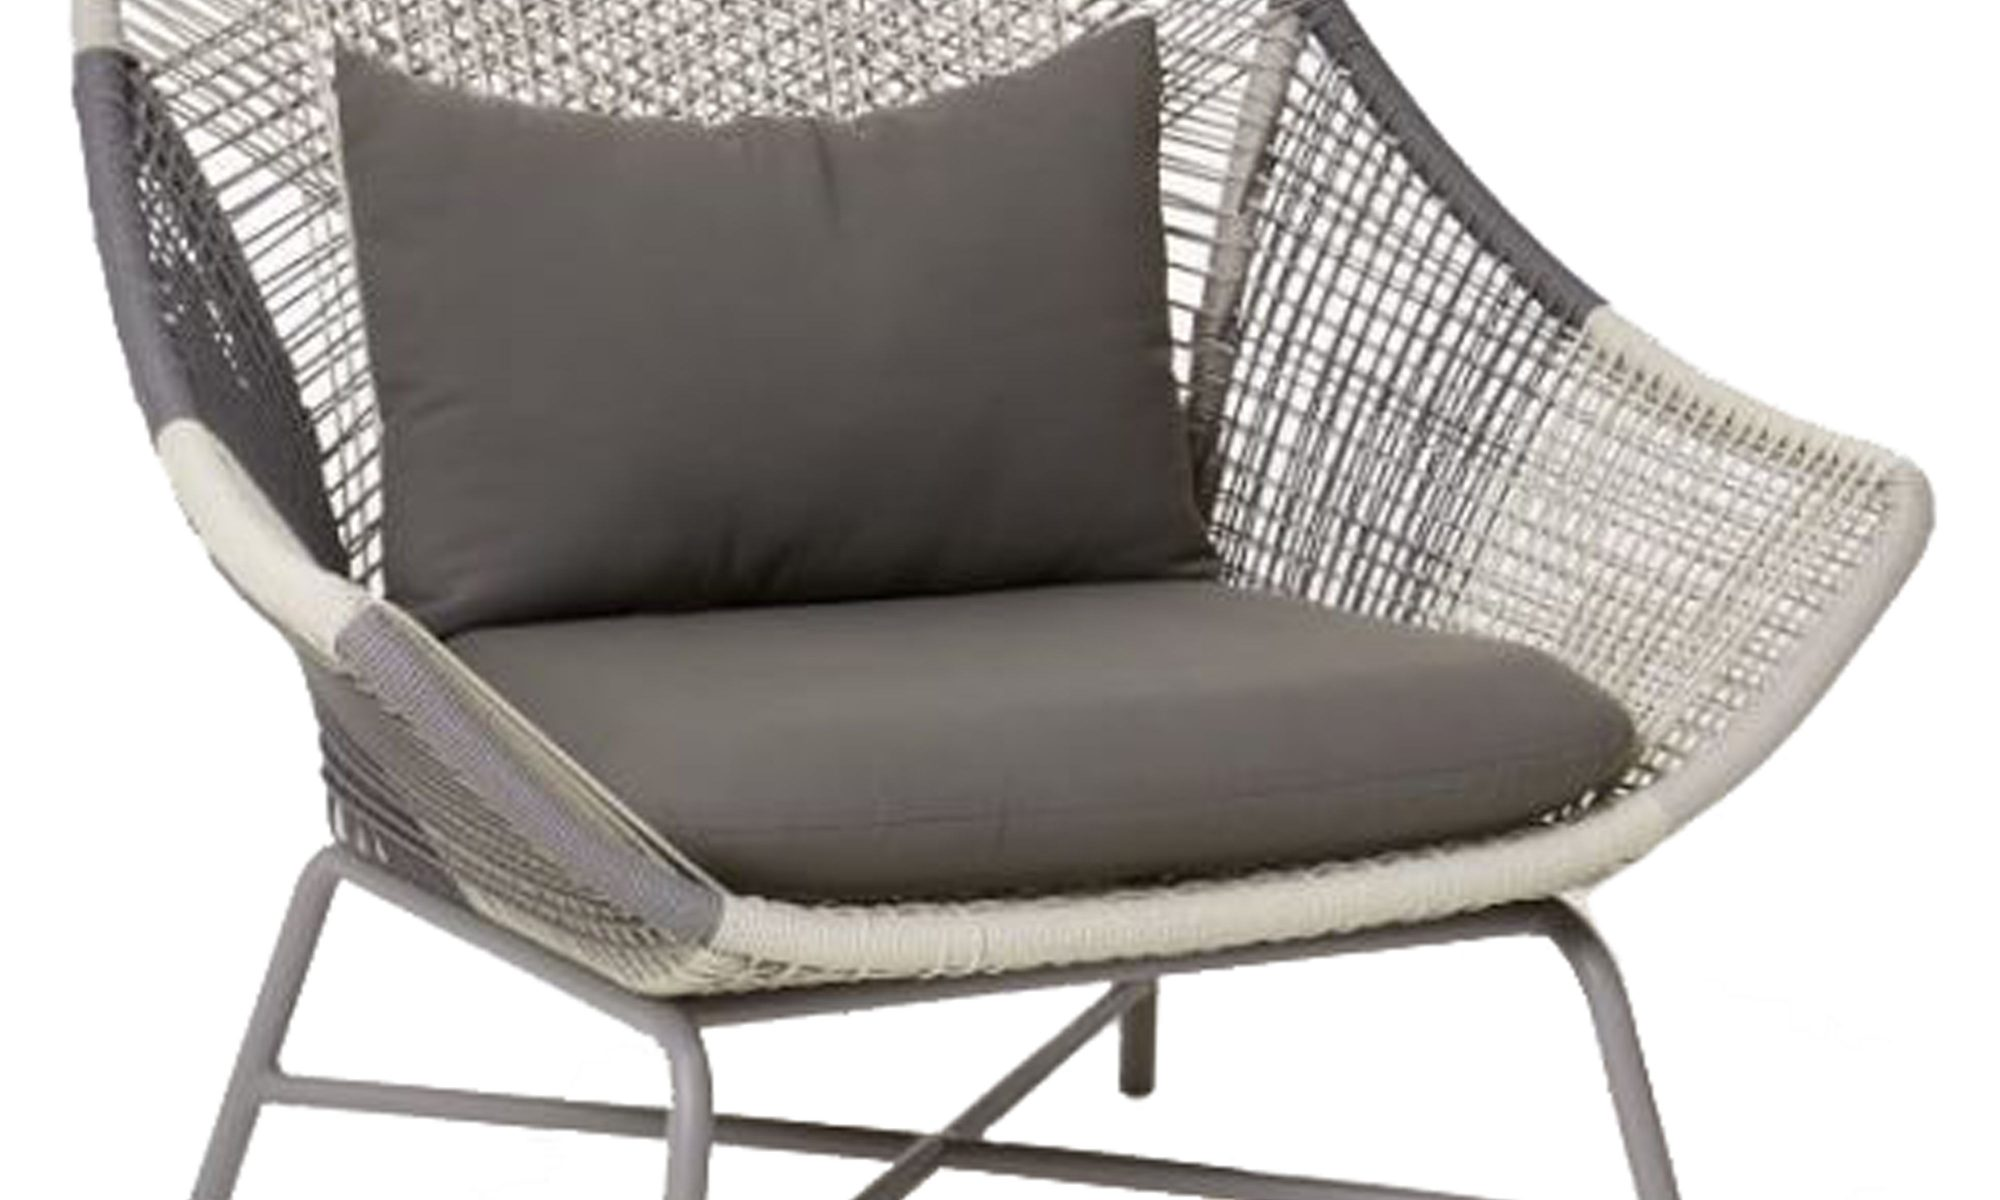 The 25 Best Garden Chairs Stylish Outdoor Seating For Gardens within Garden Chairs